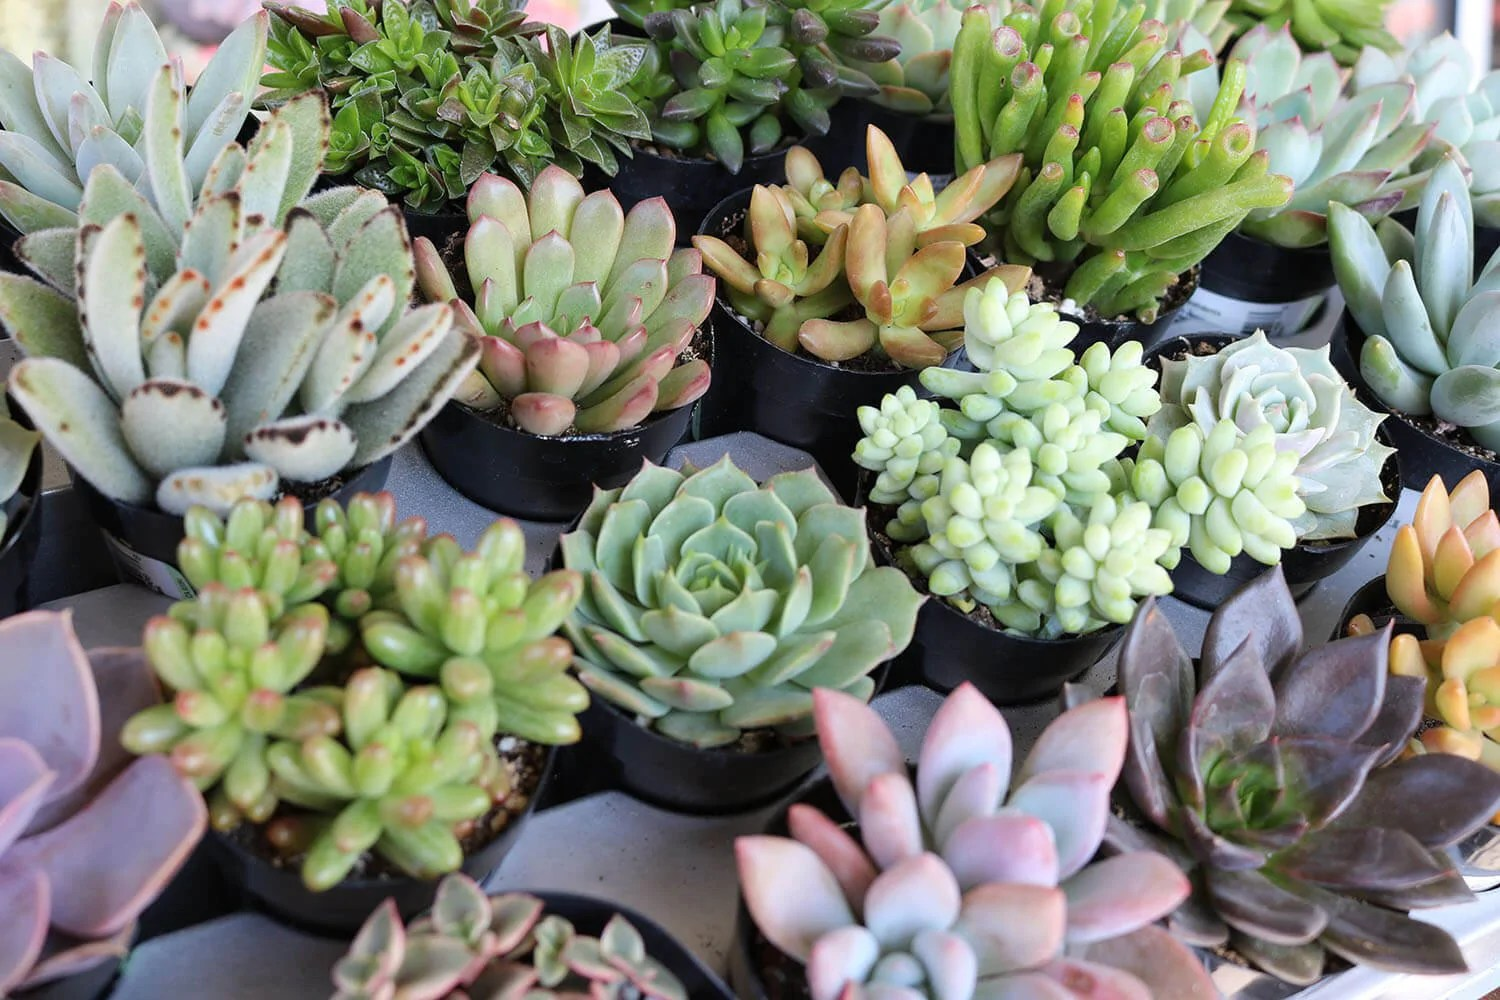 assorted succulent gifts wedding favors succulent wedding favors 2 5 Assorted Succulents bulk wholesale succulent prices at the succulent source 2